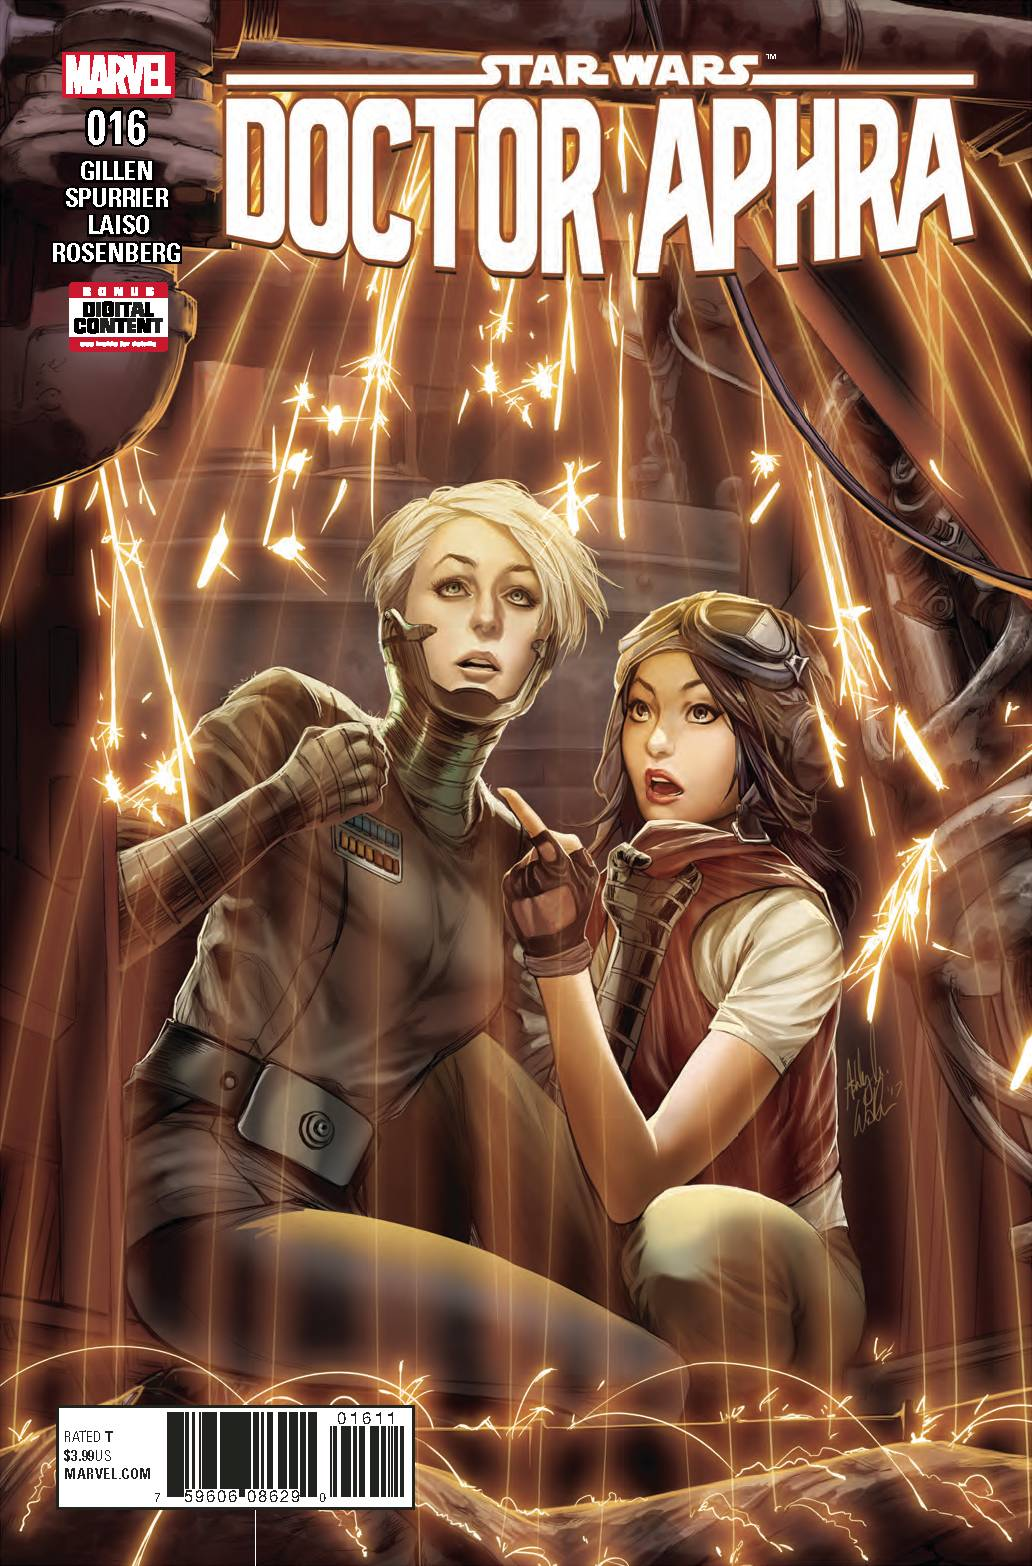 STAR WARS DOCTOR APHRA #16 01/31/18 RD